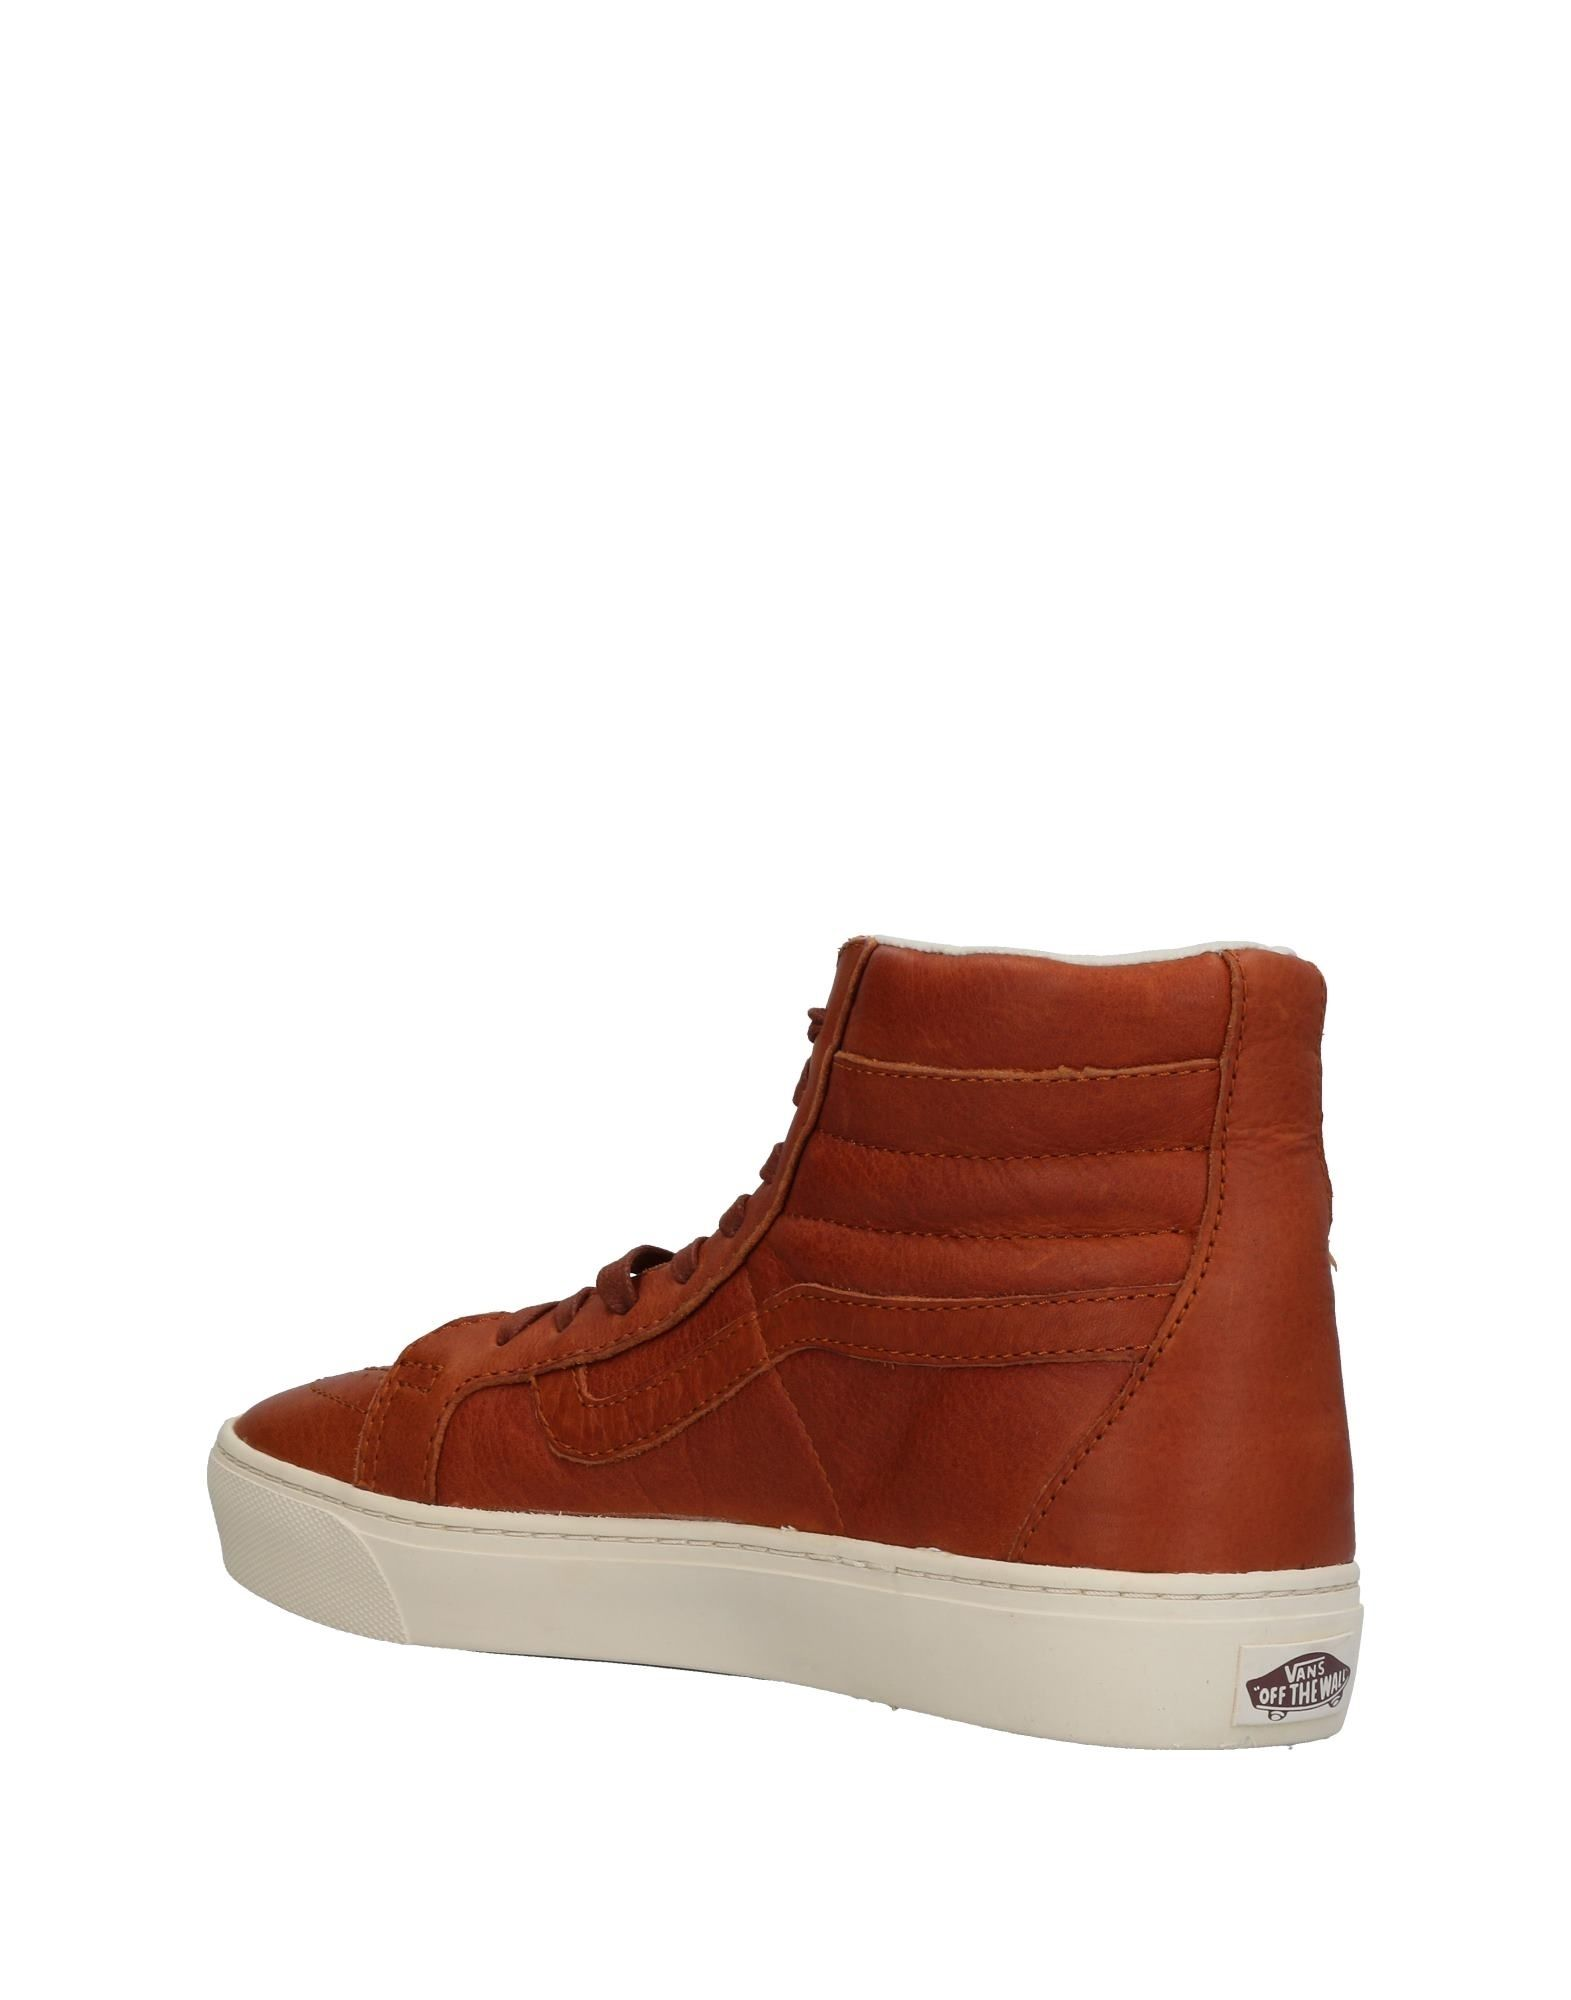 Sneakers Vans California Femme - Sneakers Vans California sur